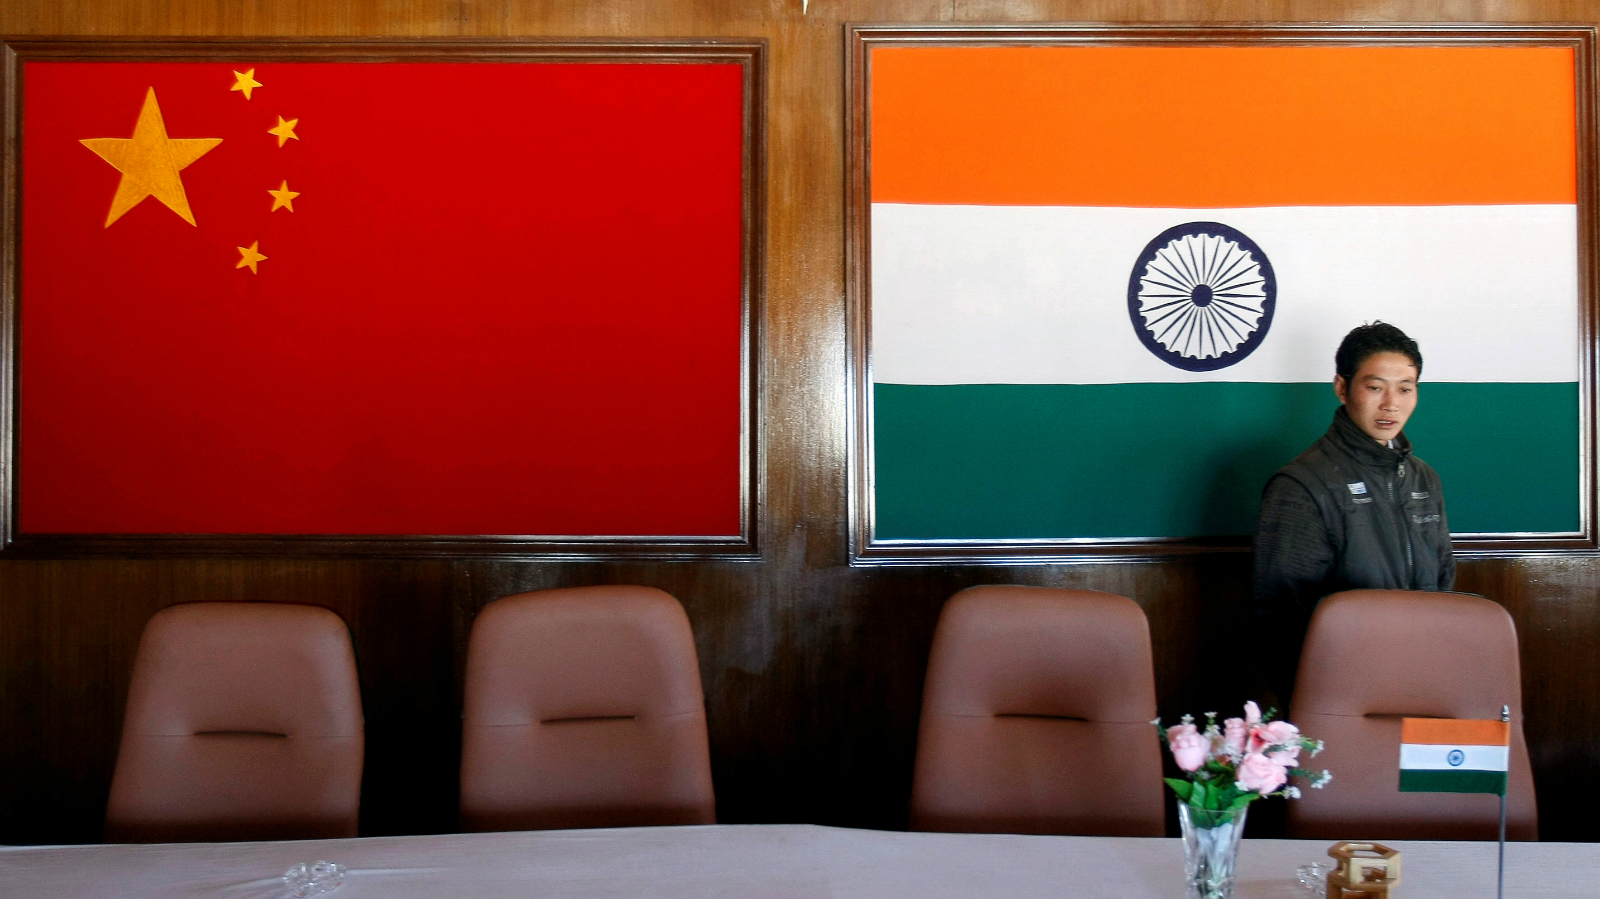 A man walks inside a conference room used for meetings between military commanders of China and India, at the Indian side of the Indo-China border at Bumla, in the northeastern Indian state of Arunachal Pradesh, November 11, 2009.